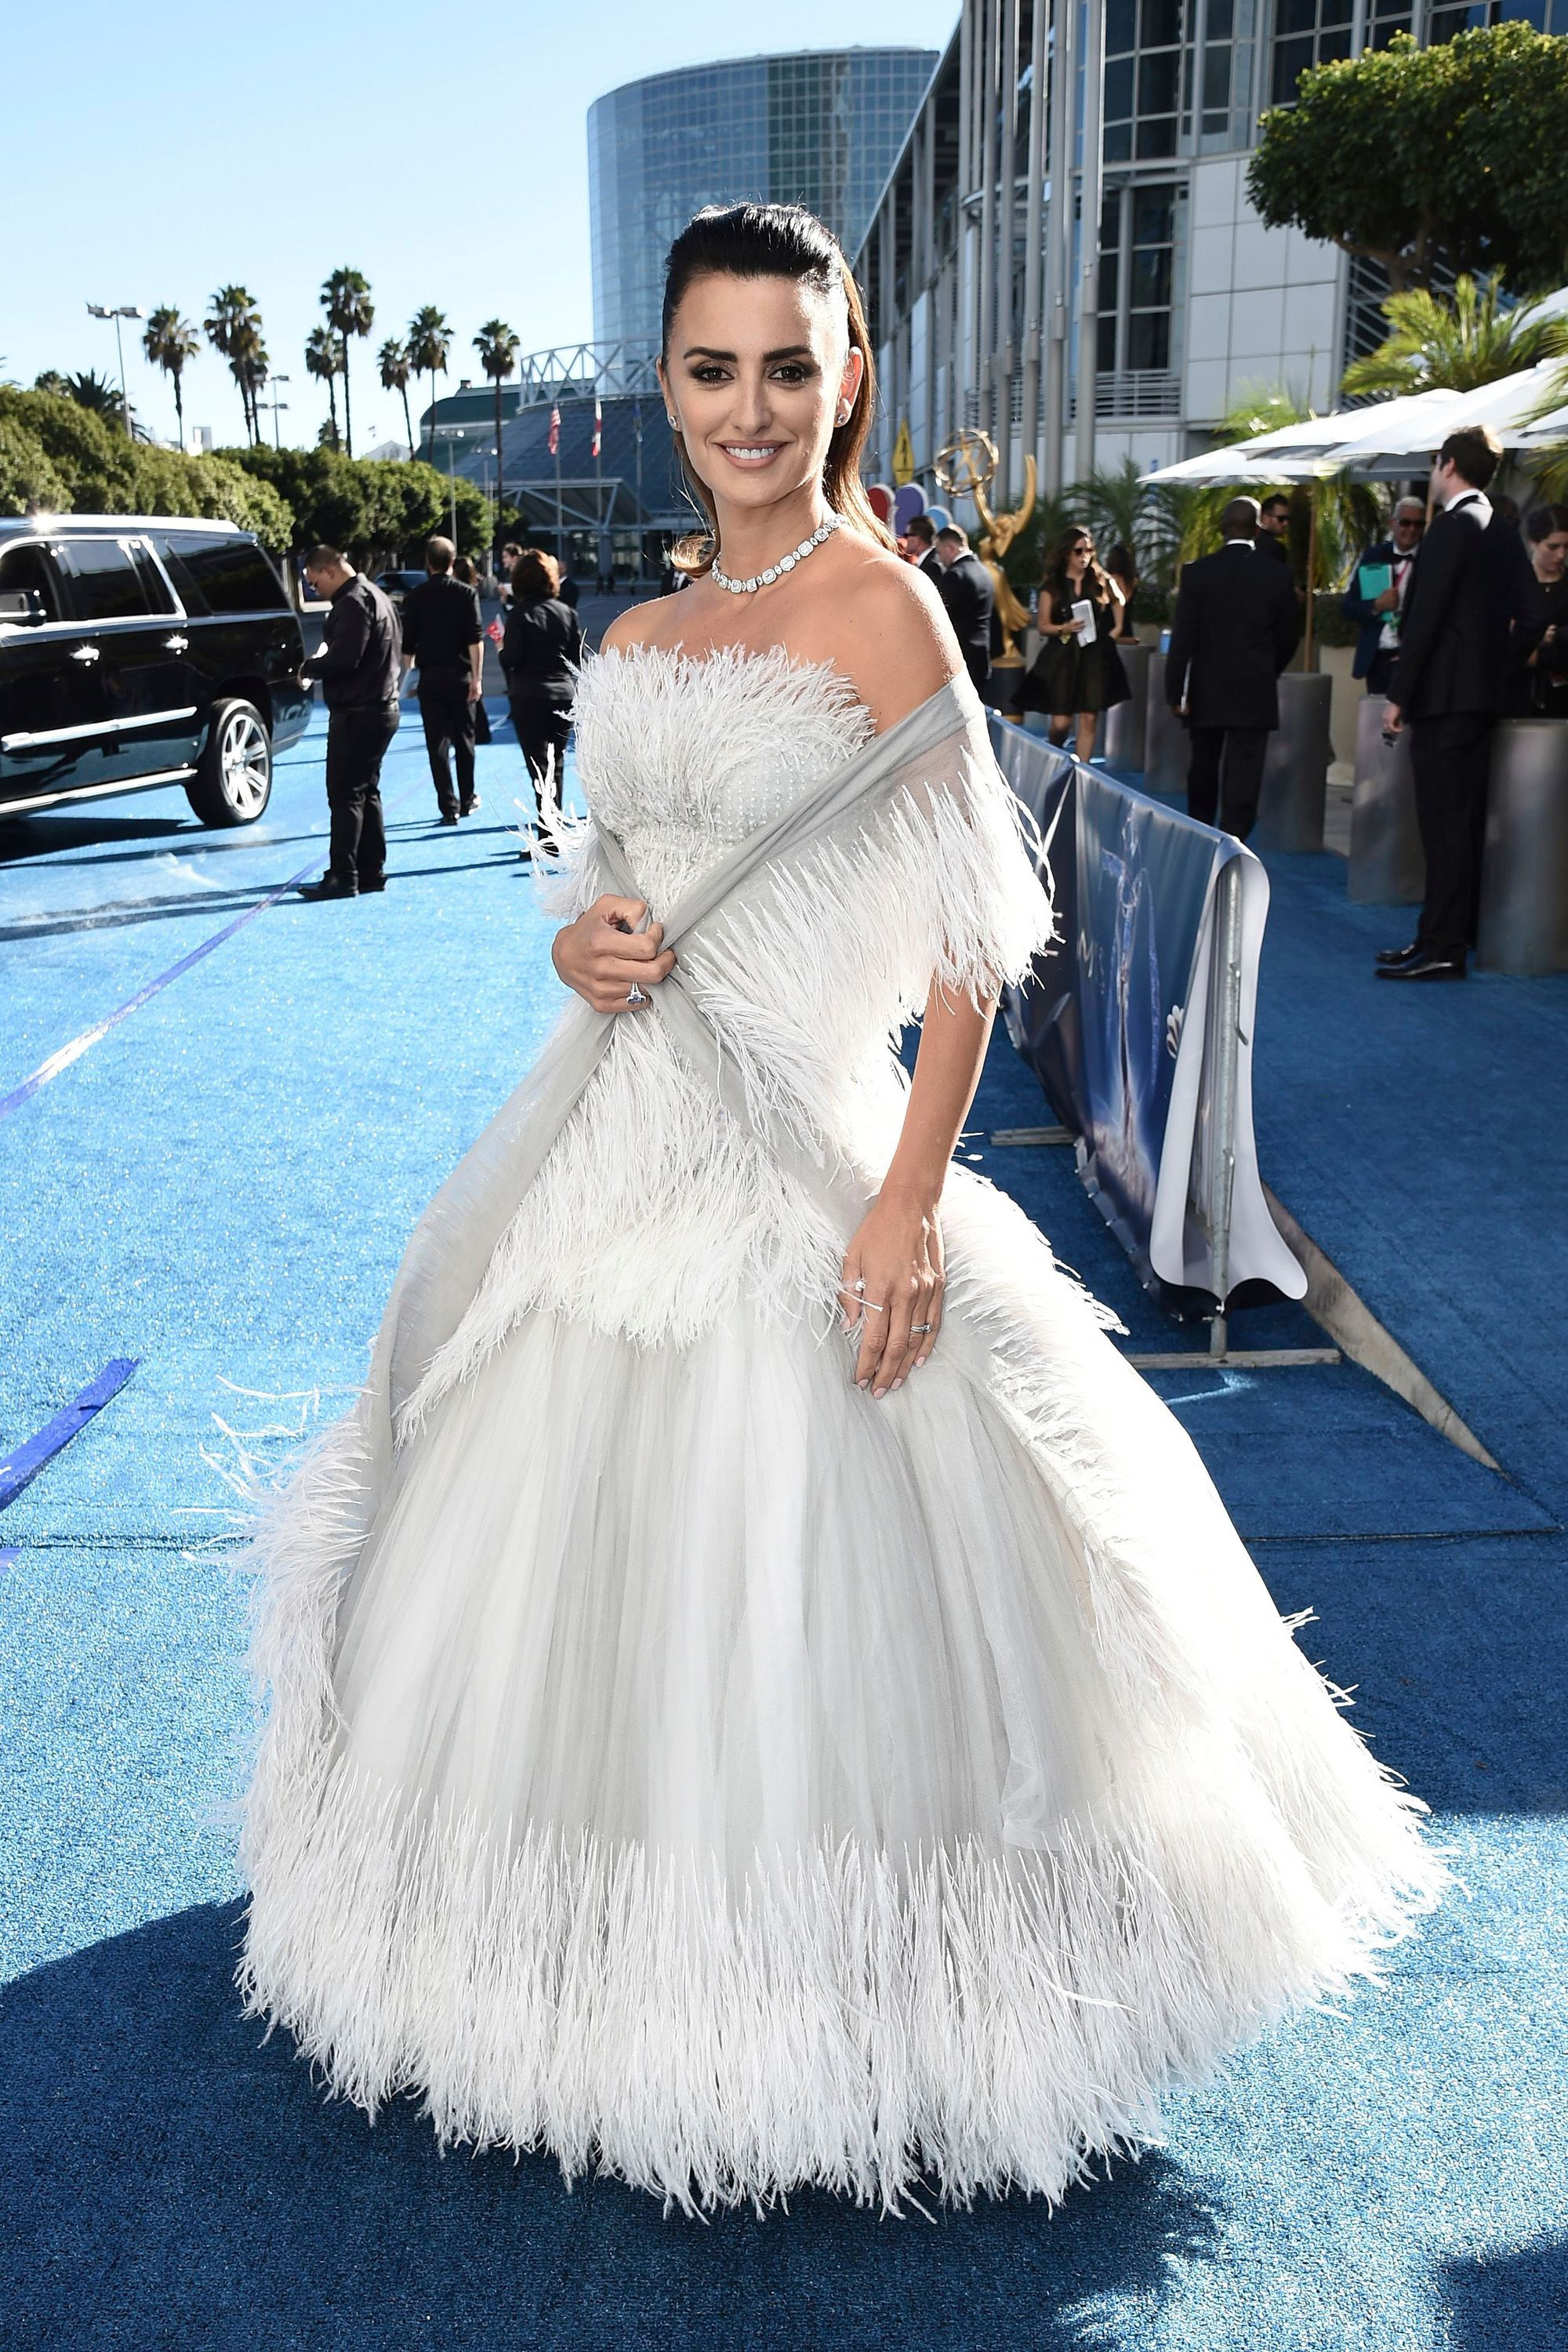 Penelope Cruz in Chanel Haute Couture, 70th Annual Primetime Emmy Awards, Betty White, Emmys 2018, Fashion, Featured, Glenn Weiss, Hannah Gadsby, highlights, Jav Svendsen, Online Exclusive, Style, The Marvellous Mrs. Maisel, top moments, We solved it, Diversity